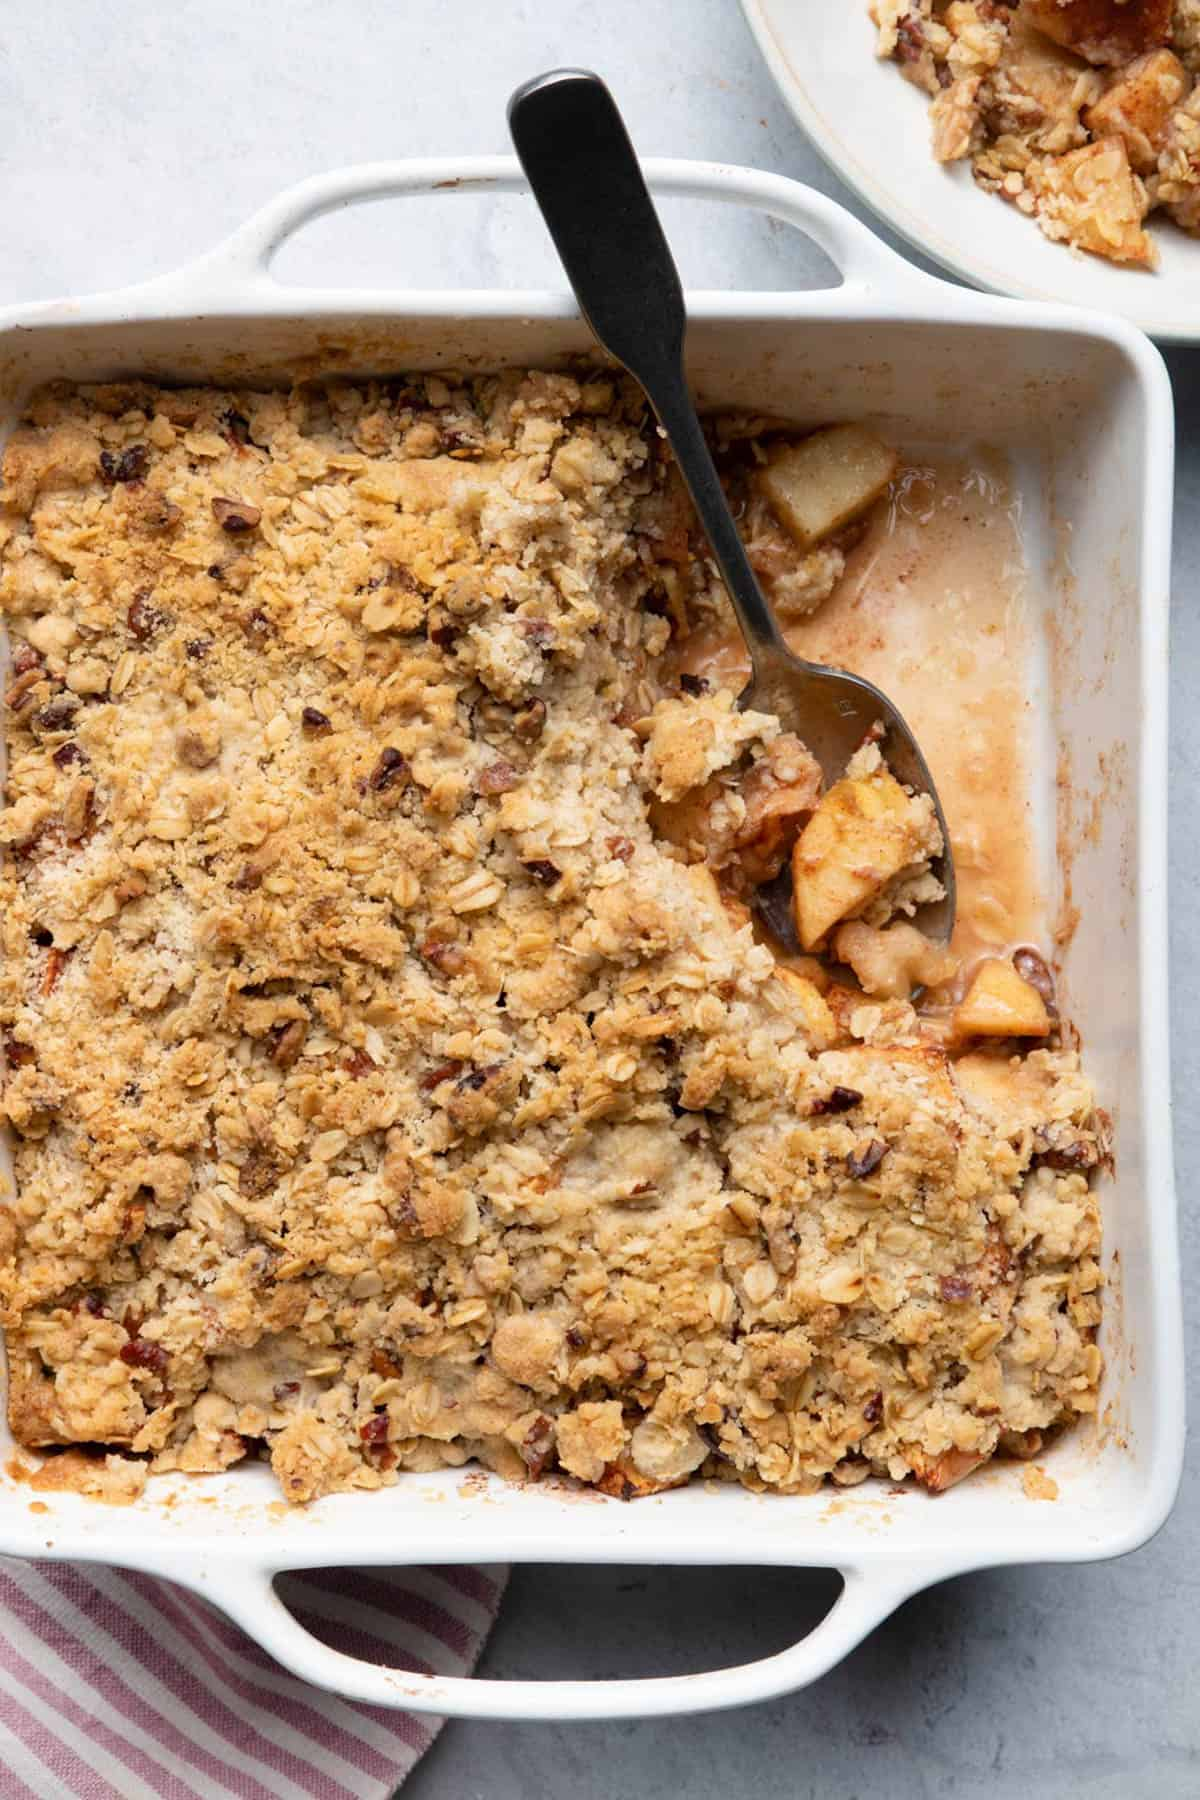 Easy apple crisp out of the oven in a white baking dish with spoon inside